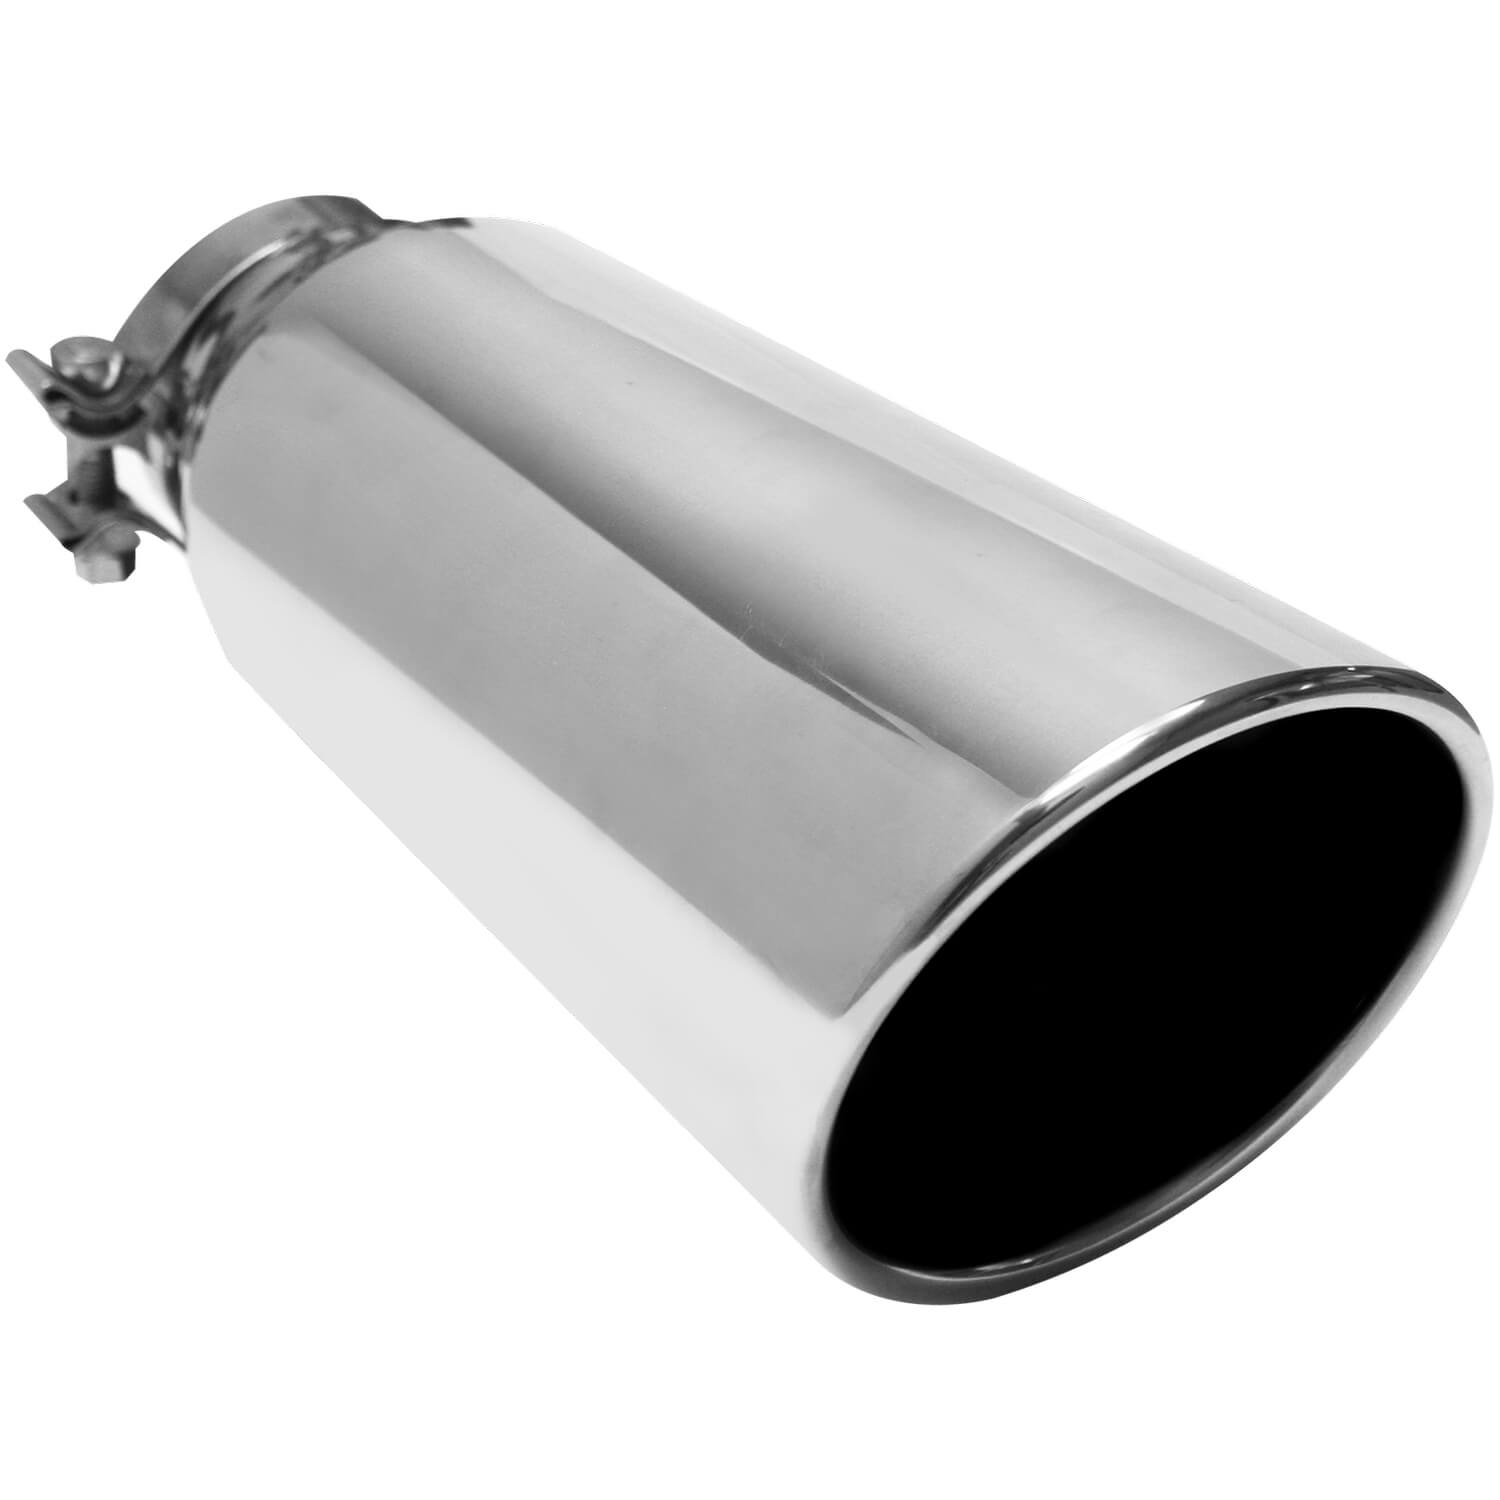 Magnaflow 35212 - Magnaflow Polished Stainless Steel Clamp-On Exhaust Tips